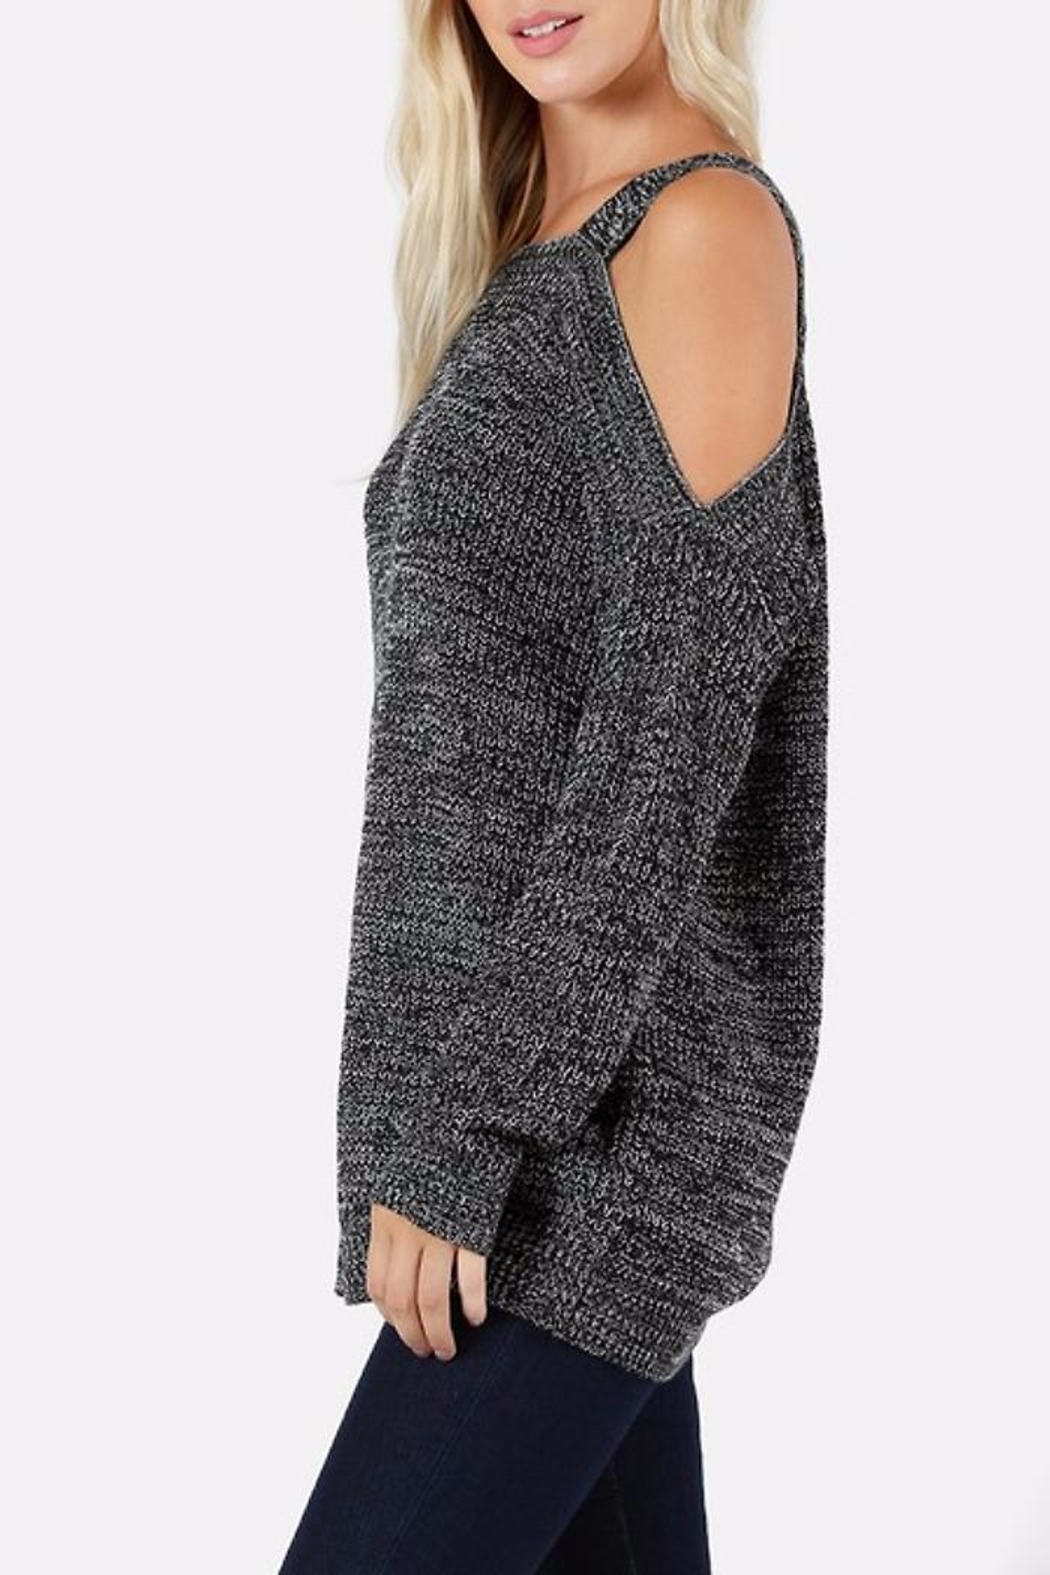 People Outfitter My Chunky Sweater - Side Cropped Image